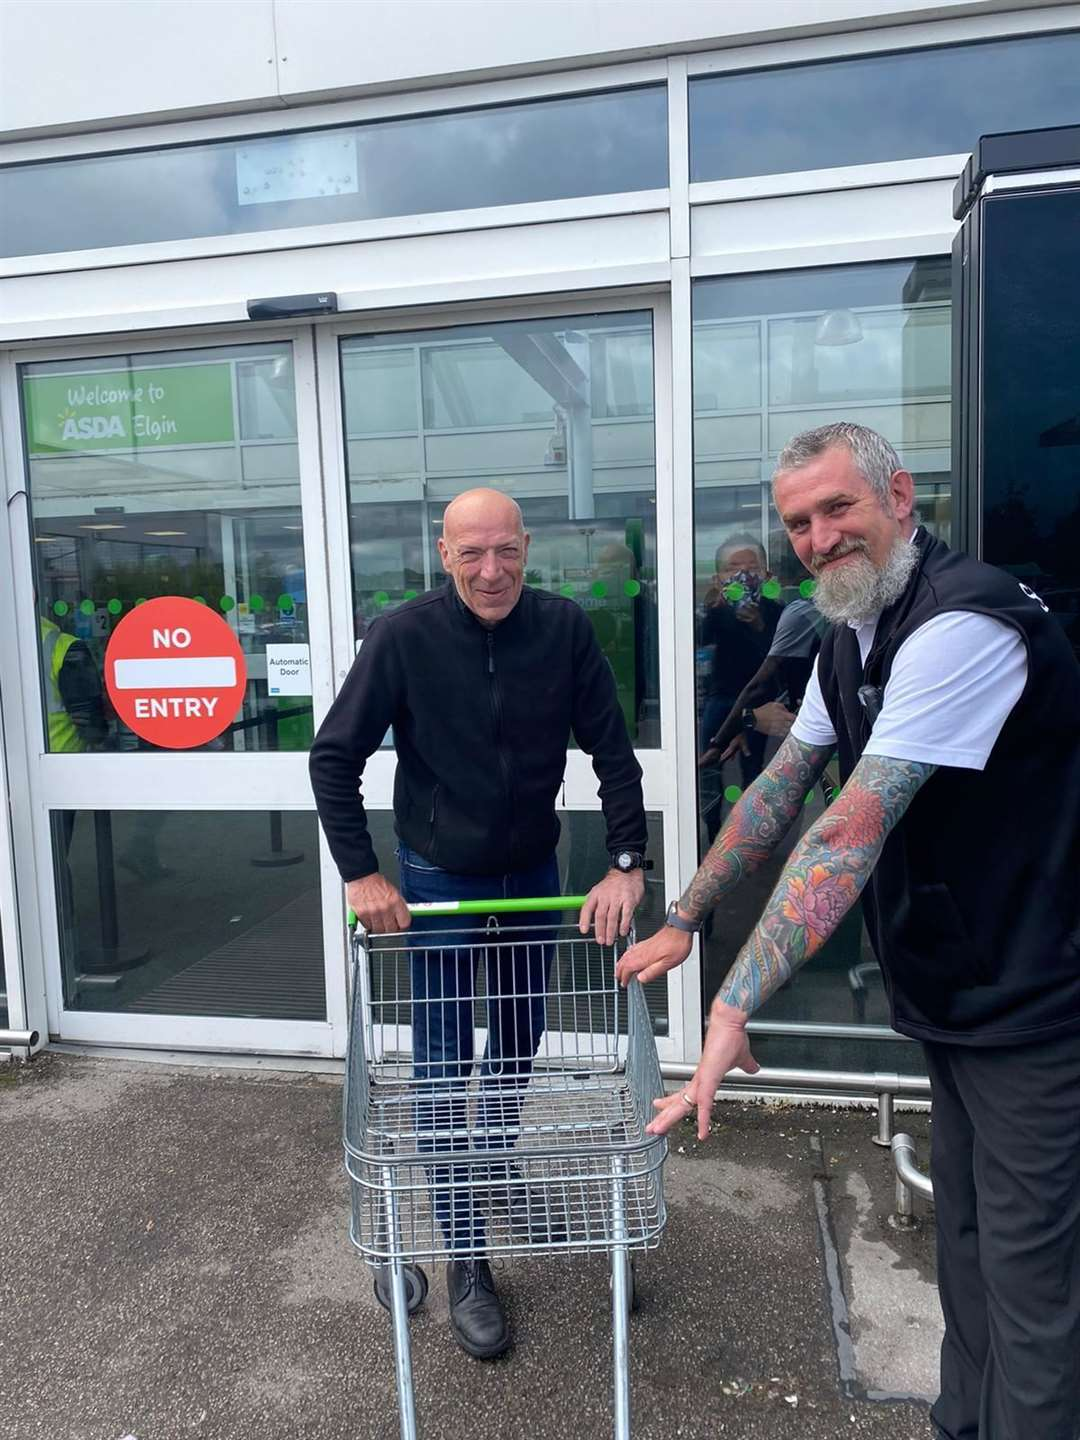 Glen Fraser, security guard at Asda Elgin, with a customer.